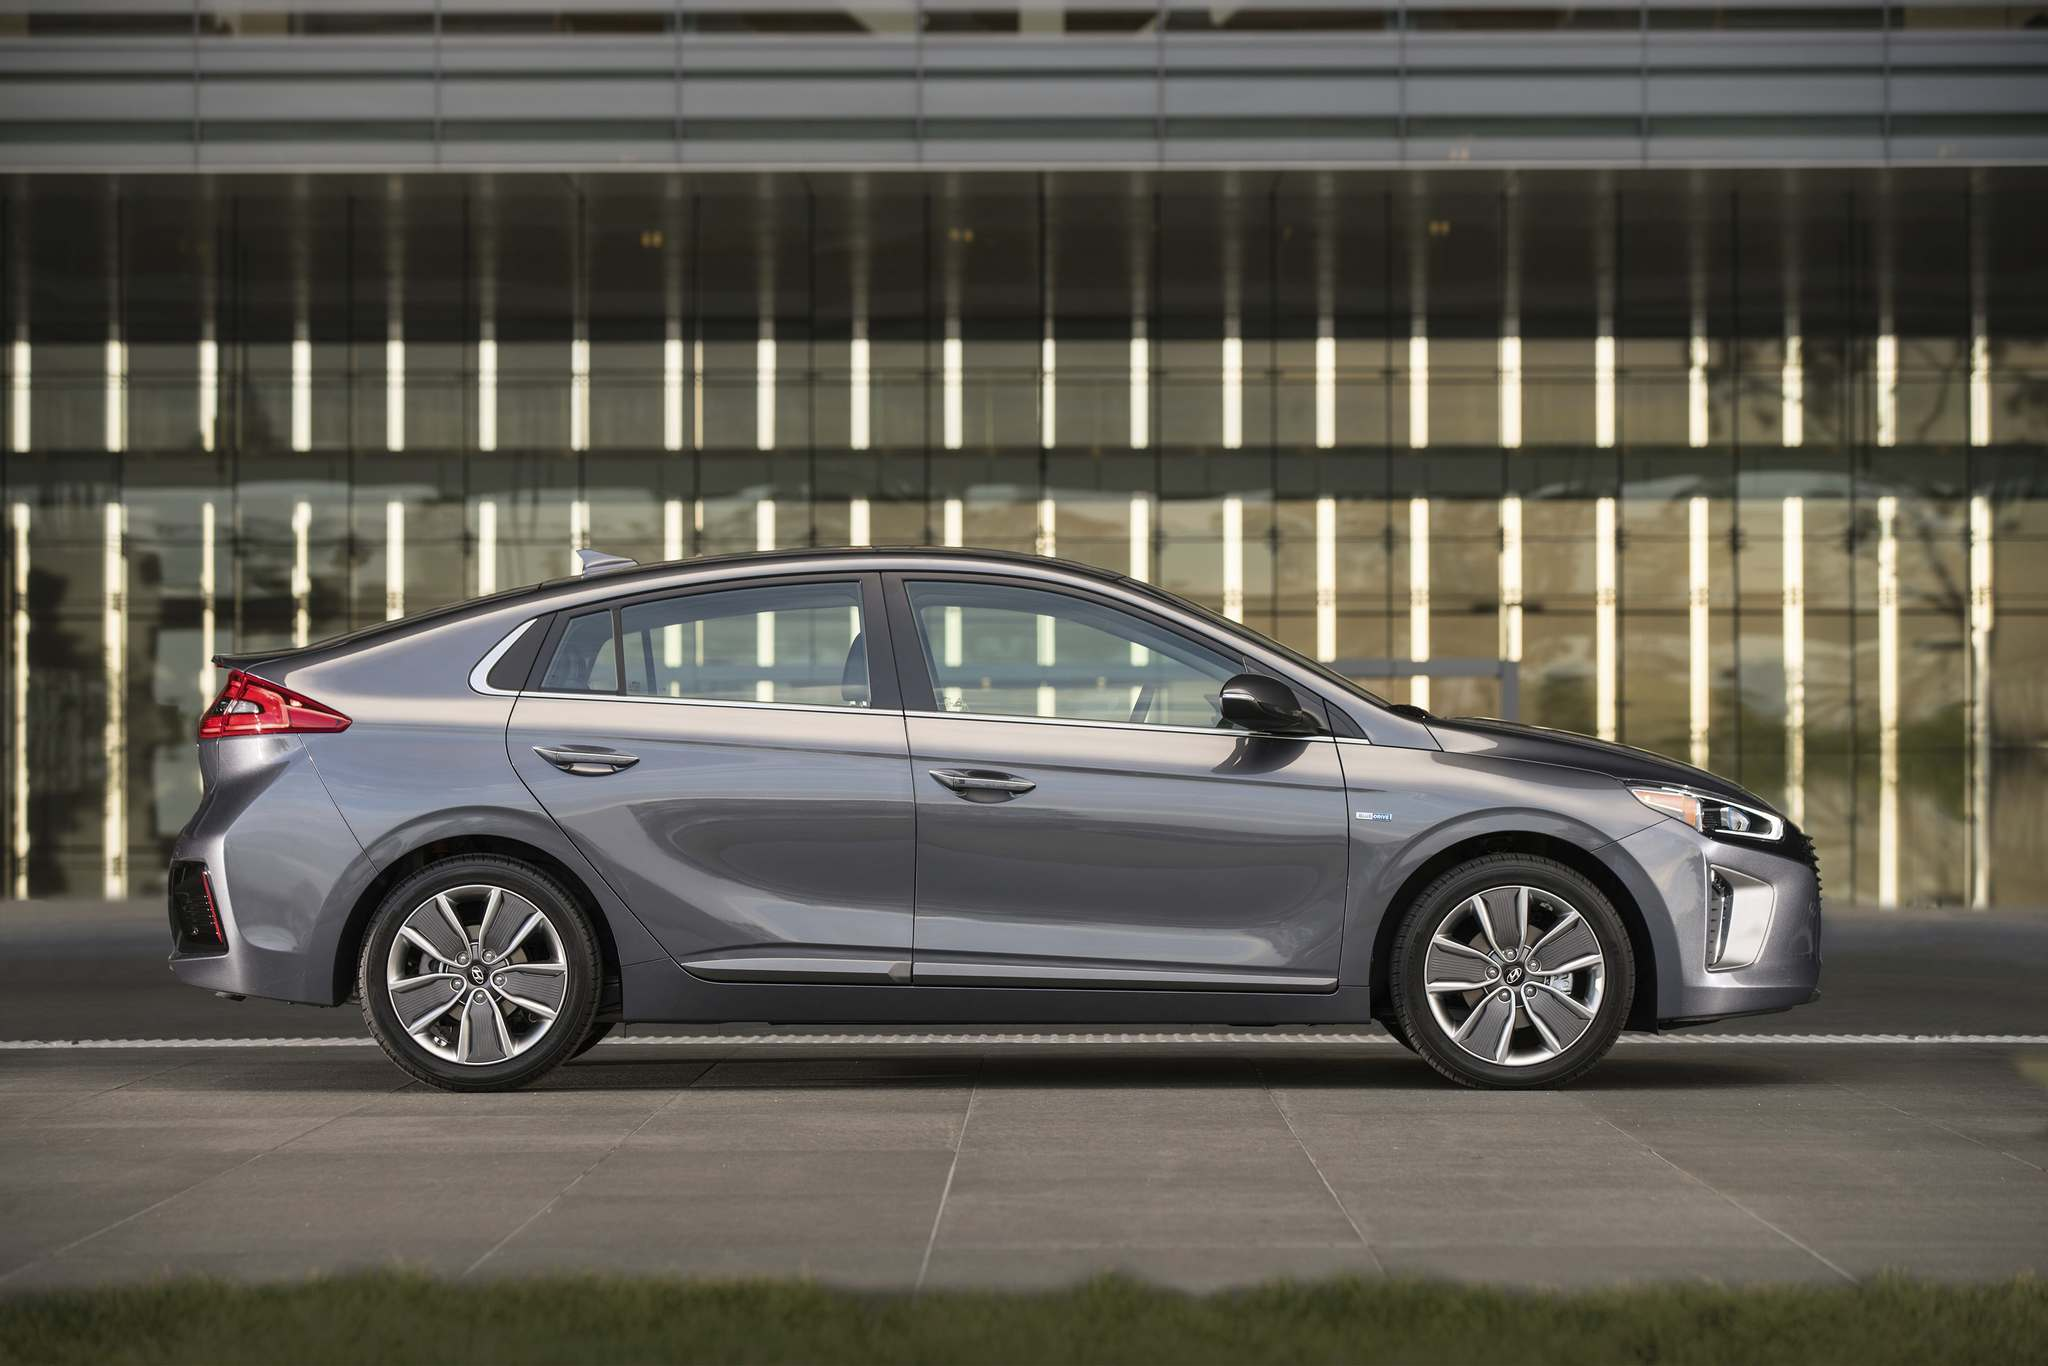 The Ioniq sacrifices power density at the altar of fuel efficiency — an acceptable trade-off when you have the power of an electric motor to add torque. (Hyundai)